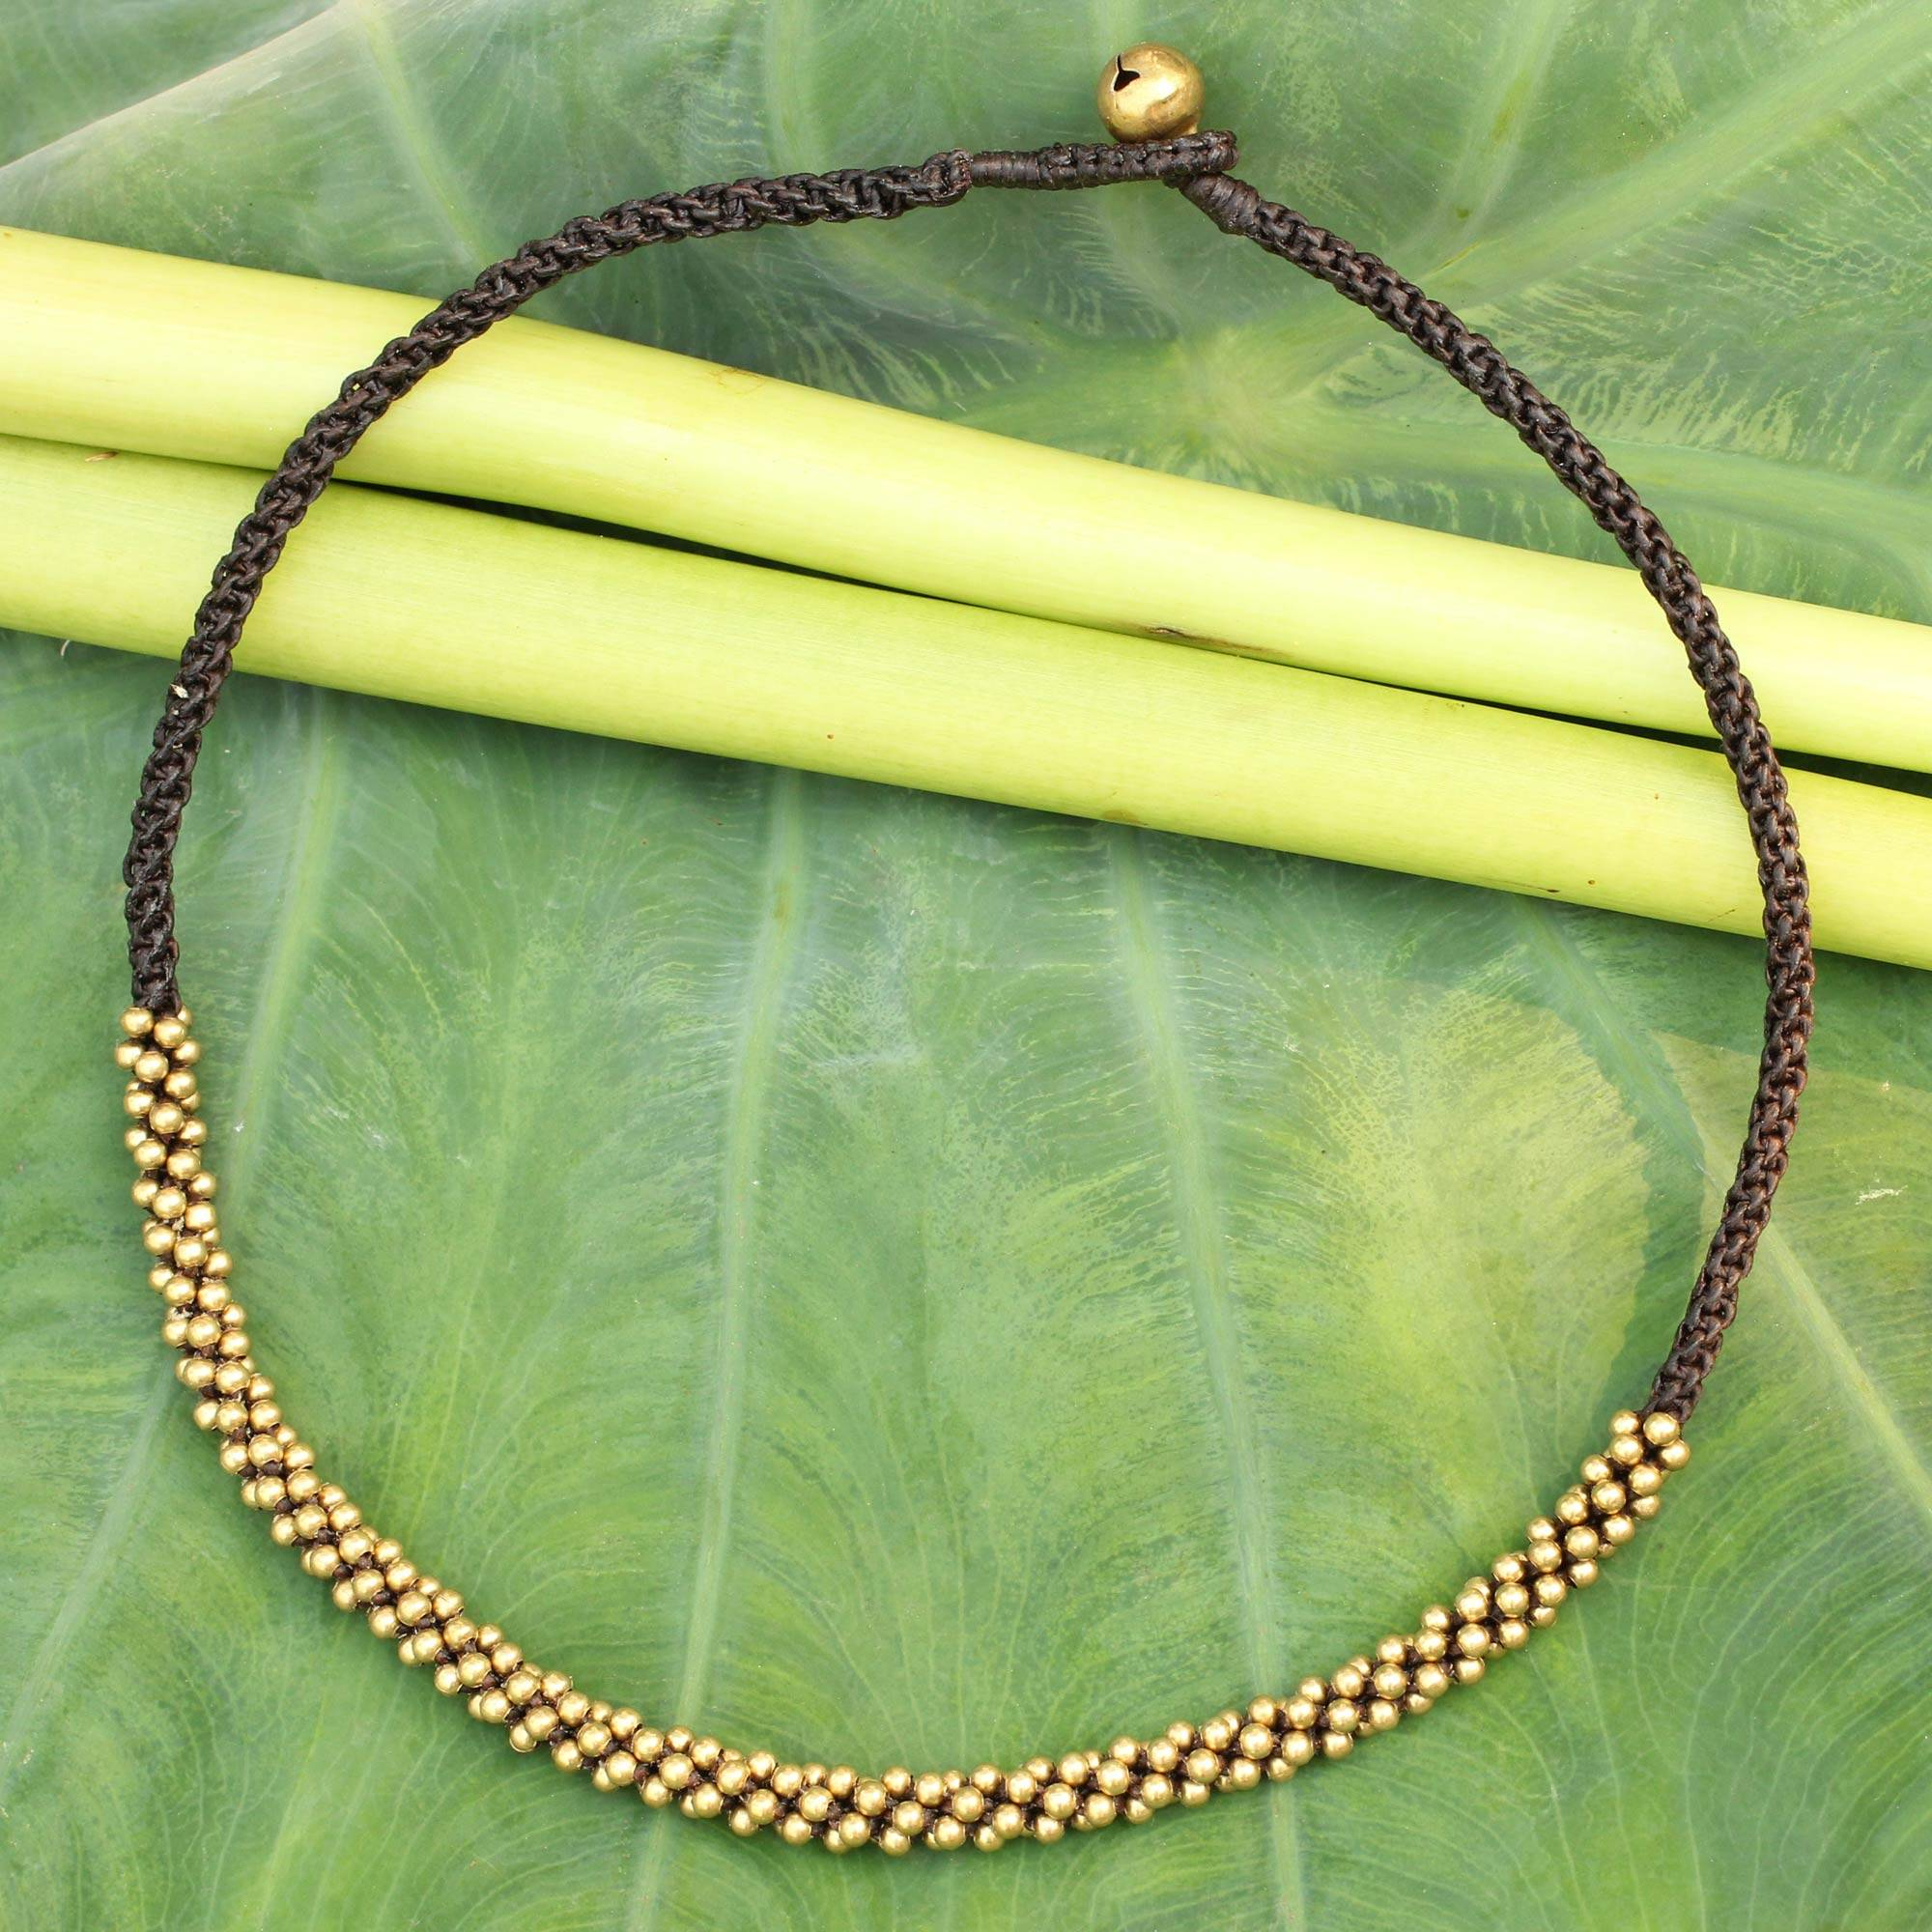 Thai Light Artisan Crafted Brass Beaded Necklace The Perfect Necklace